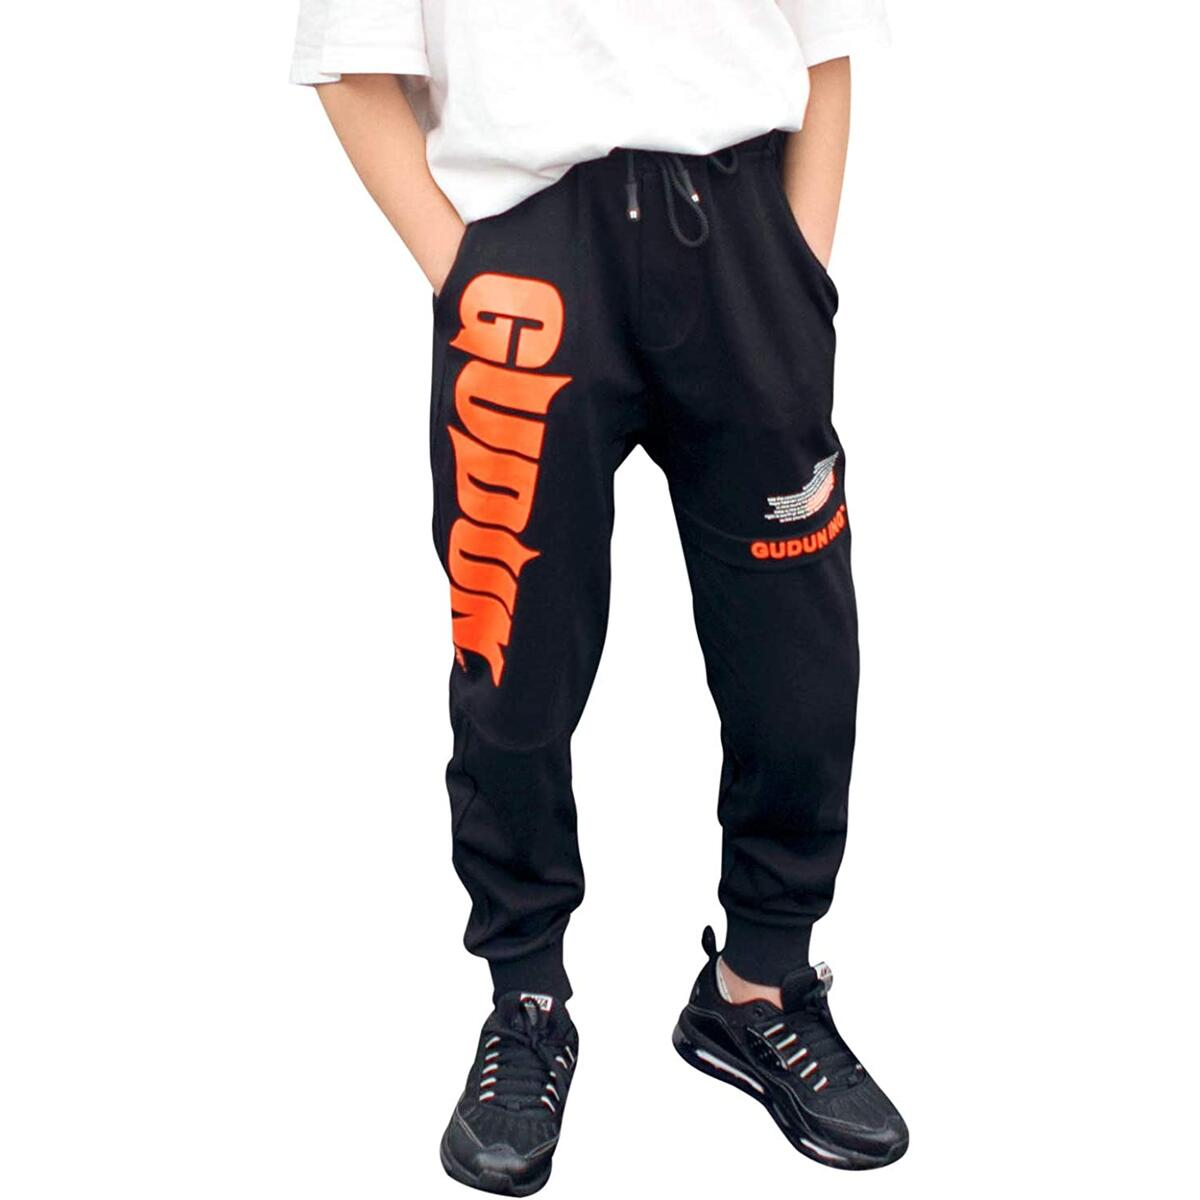 Mini Panda Boys Sweatpants Black Joggers for Boys Size 8-10-12 Comfy Drawstring Sweatpants